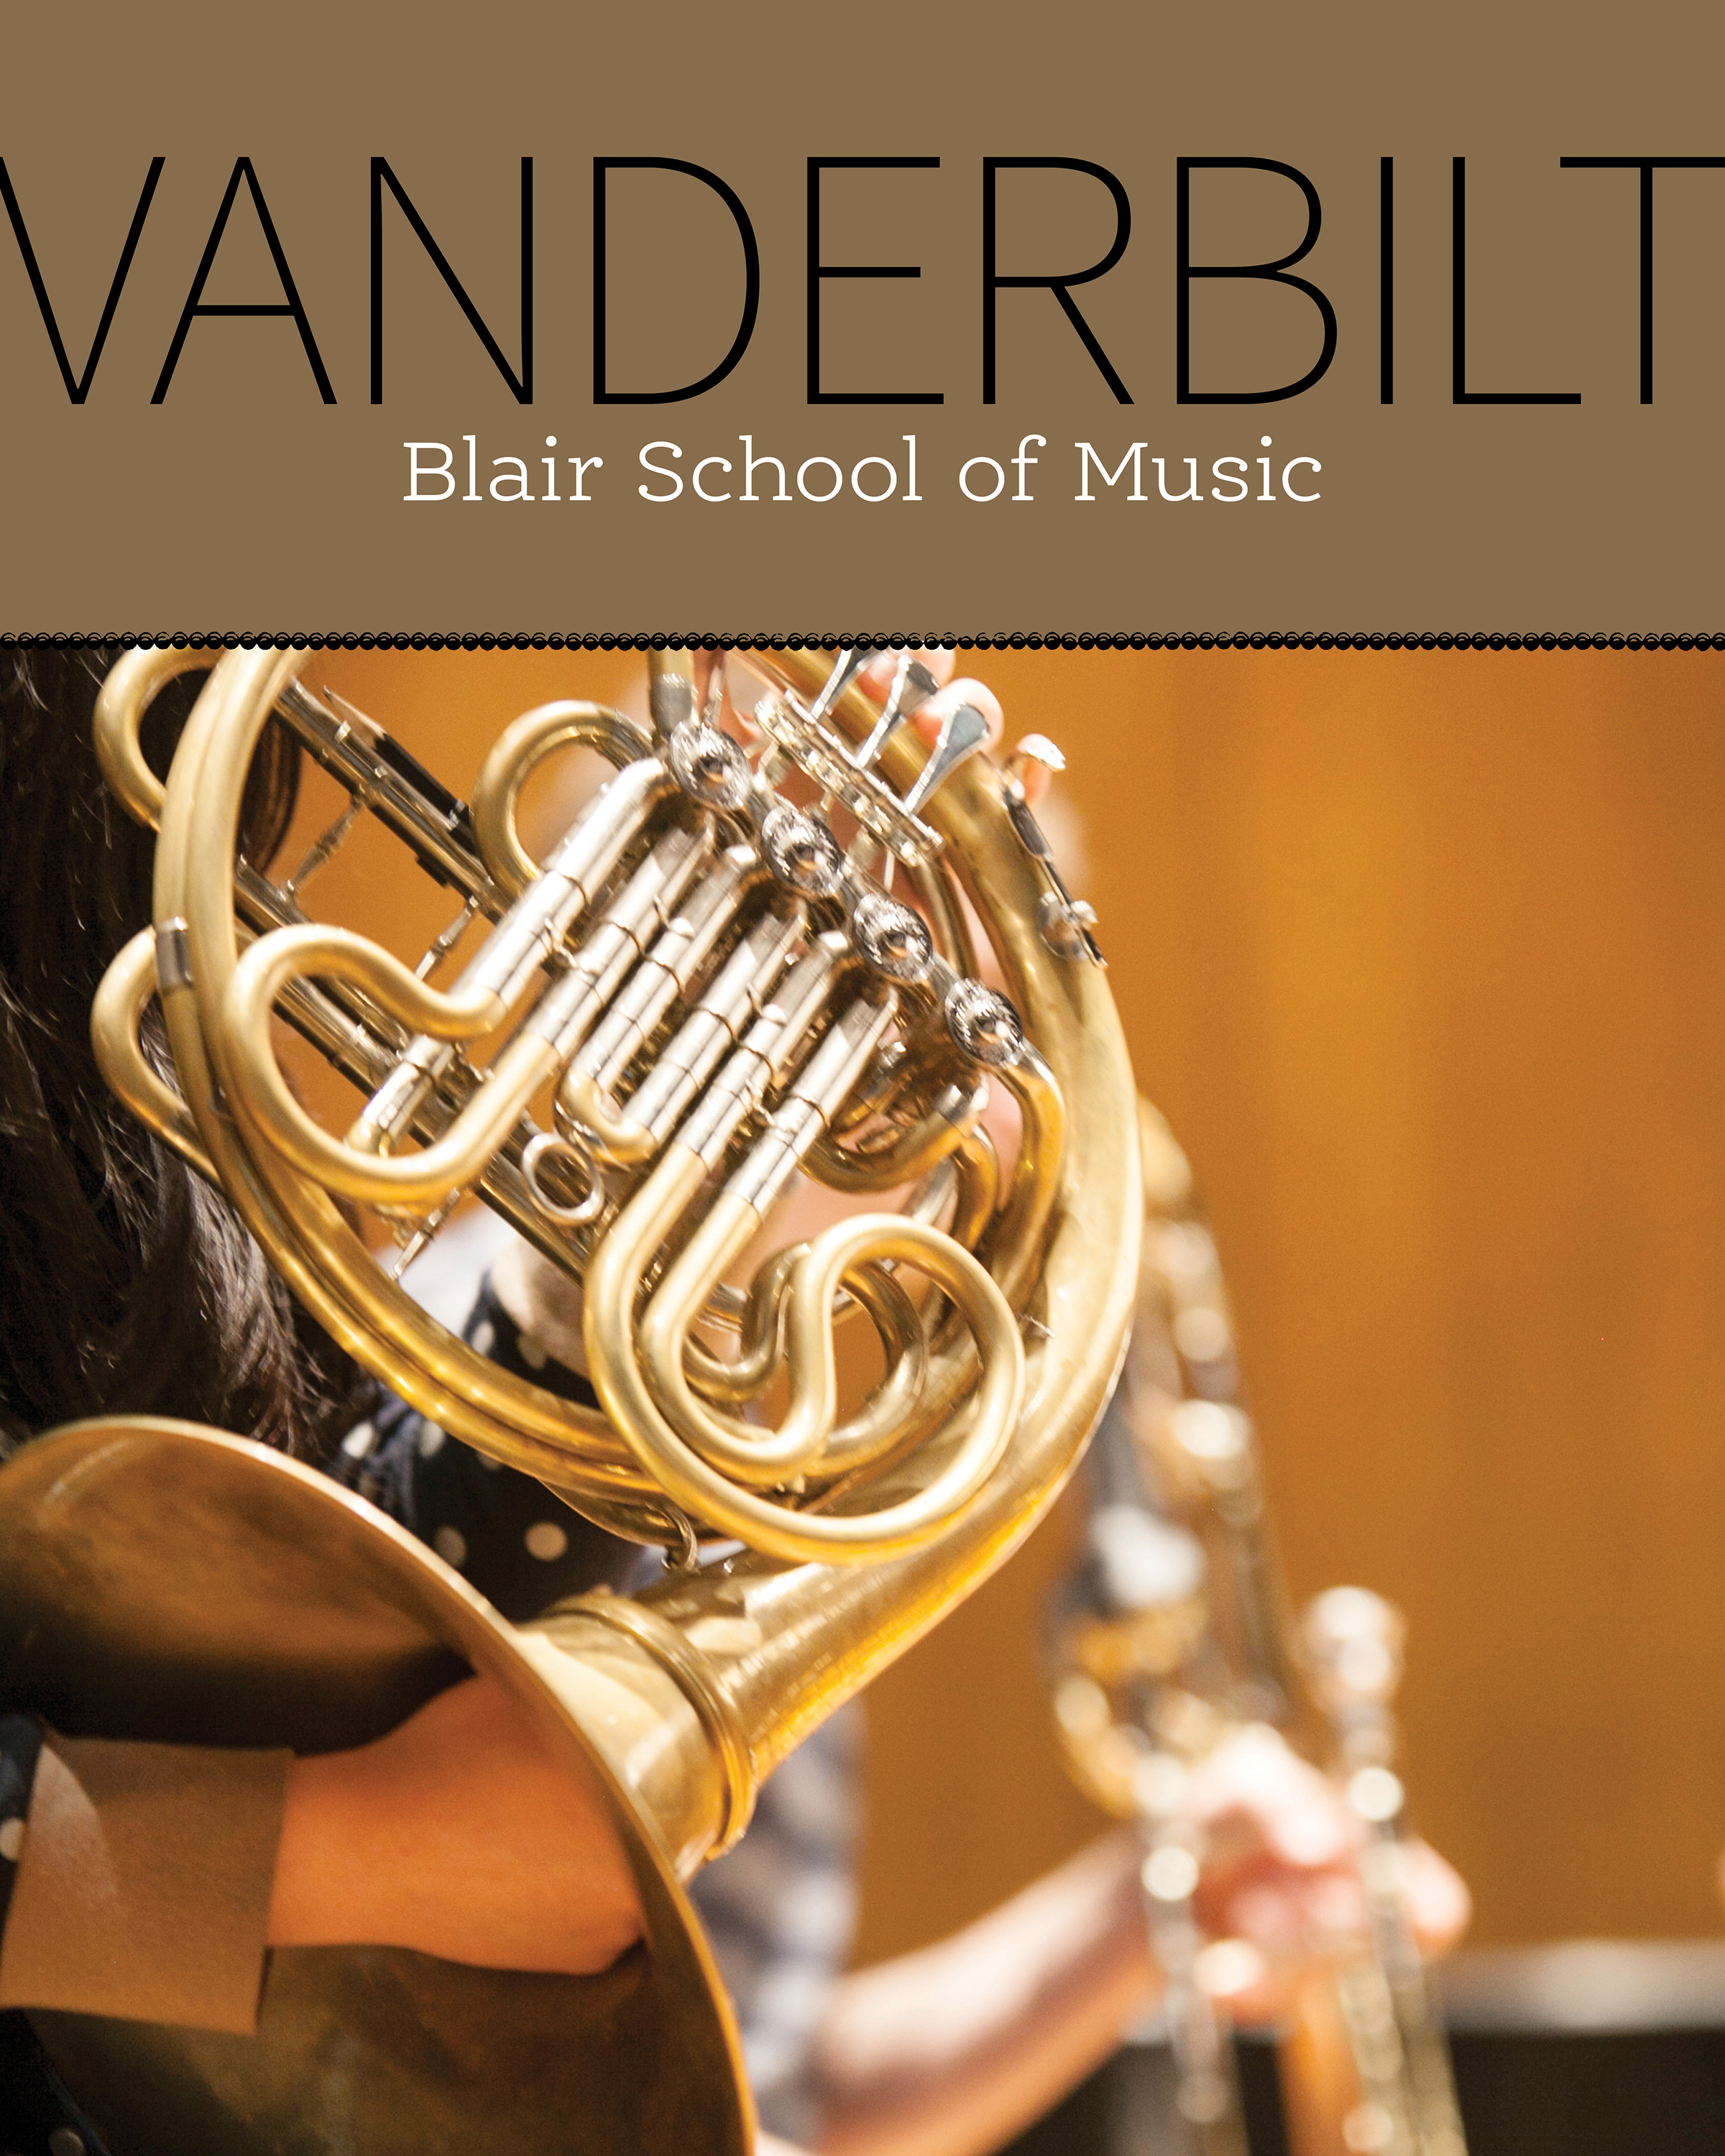 Blair School of Music viewbook